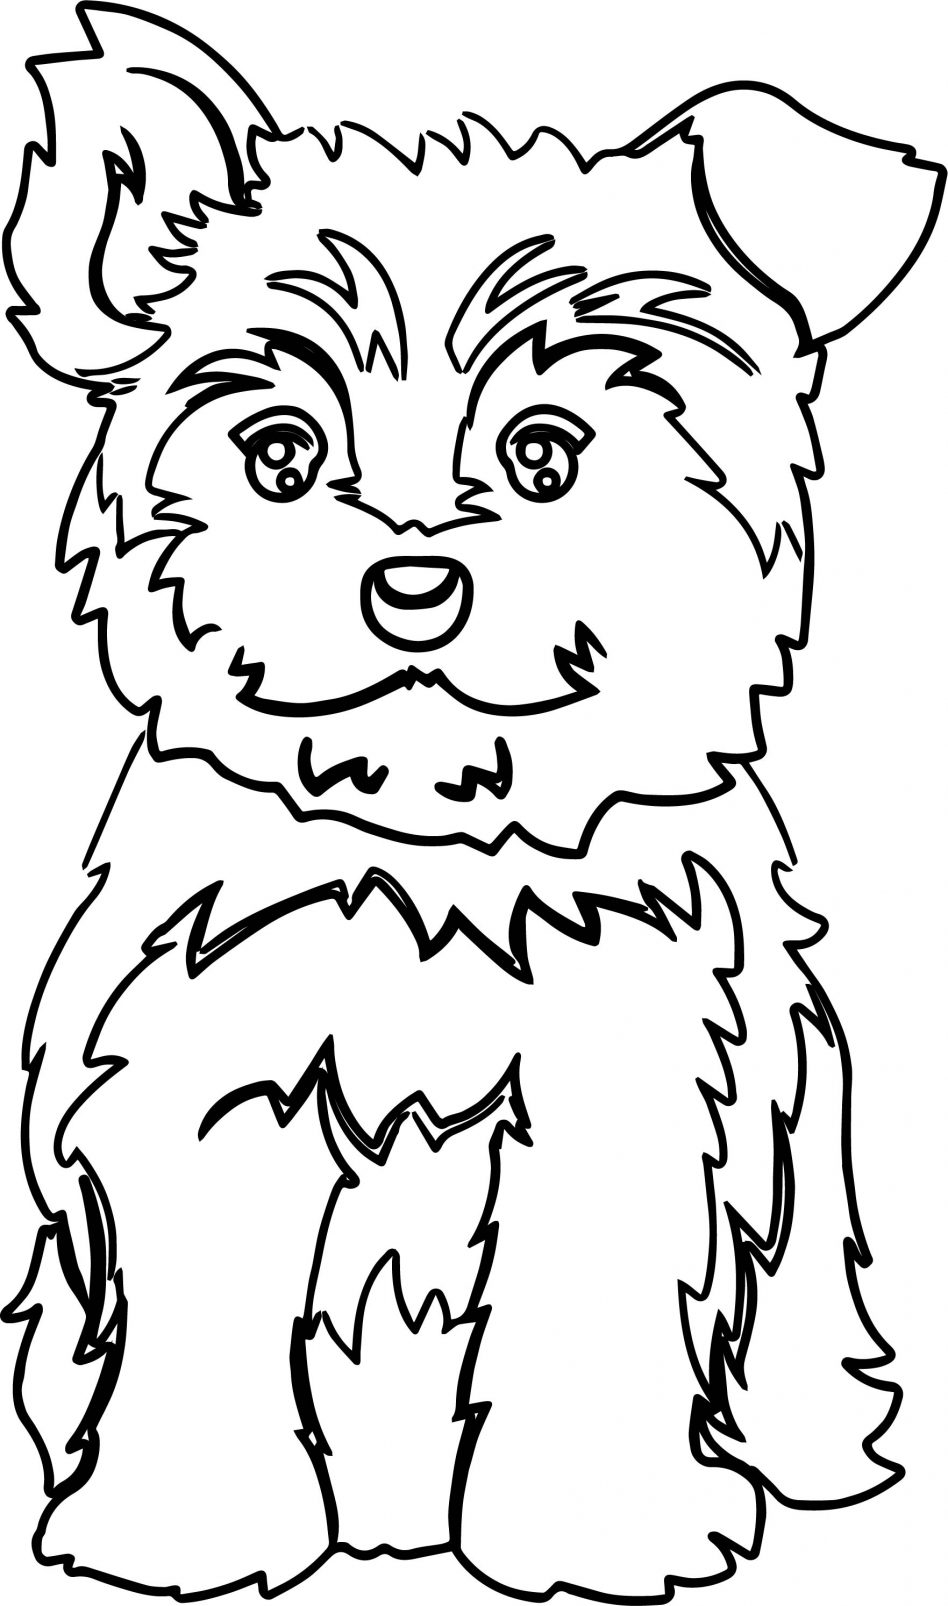 yorkie puppy coloring pages yorkie line drawing at getdrawings free download pages puppy coloring yorkie